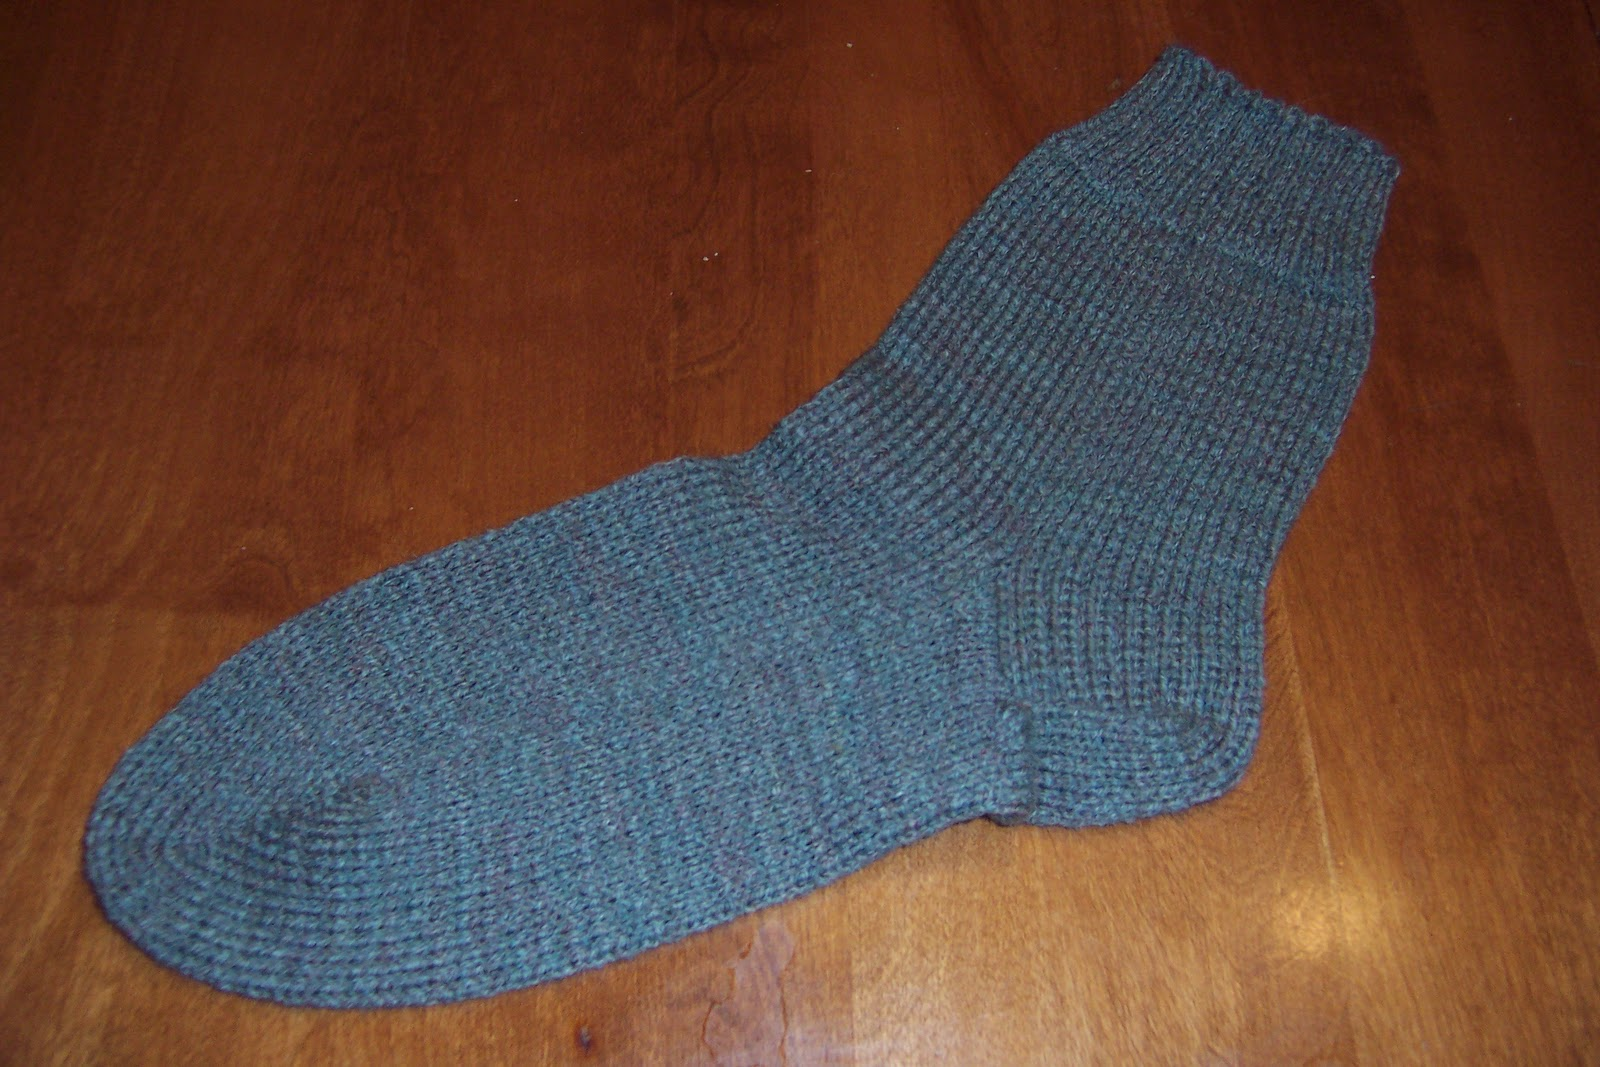 MARG\'S KNITTING PLACE: Let\'s knit socks